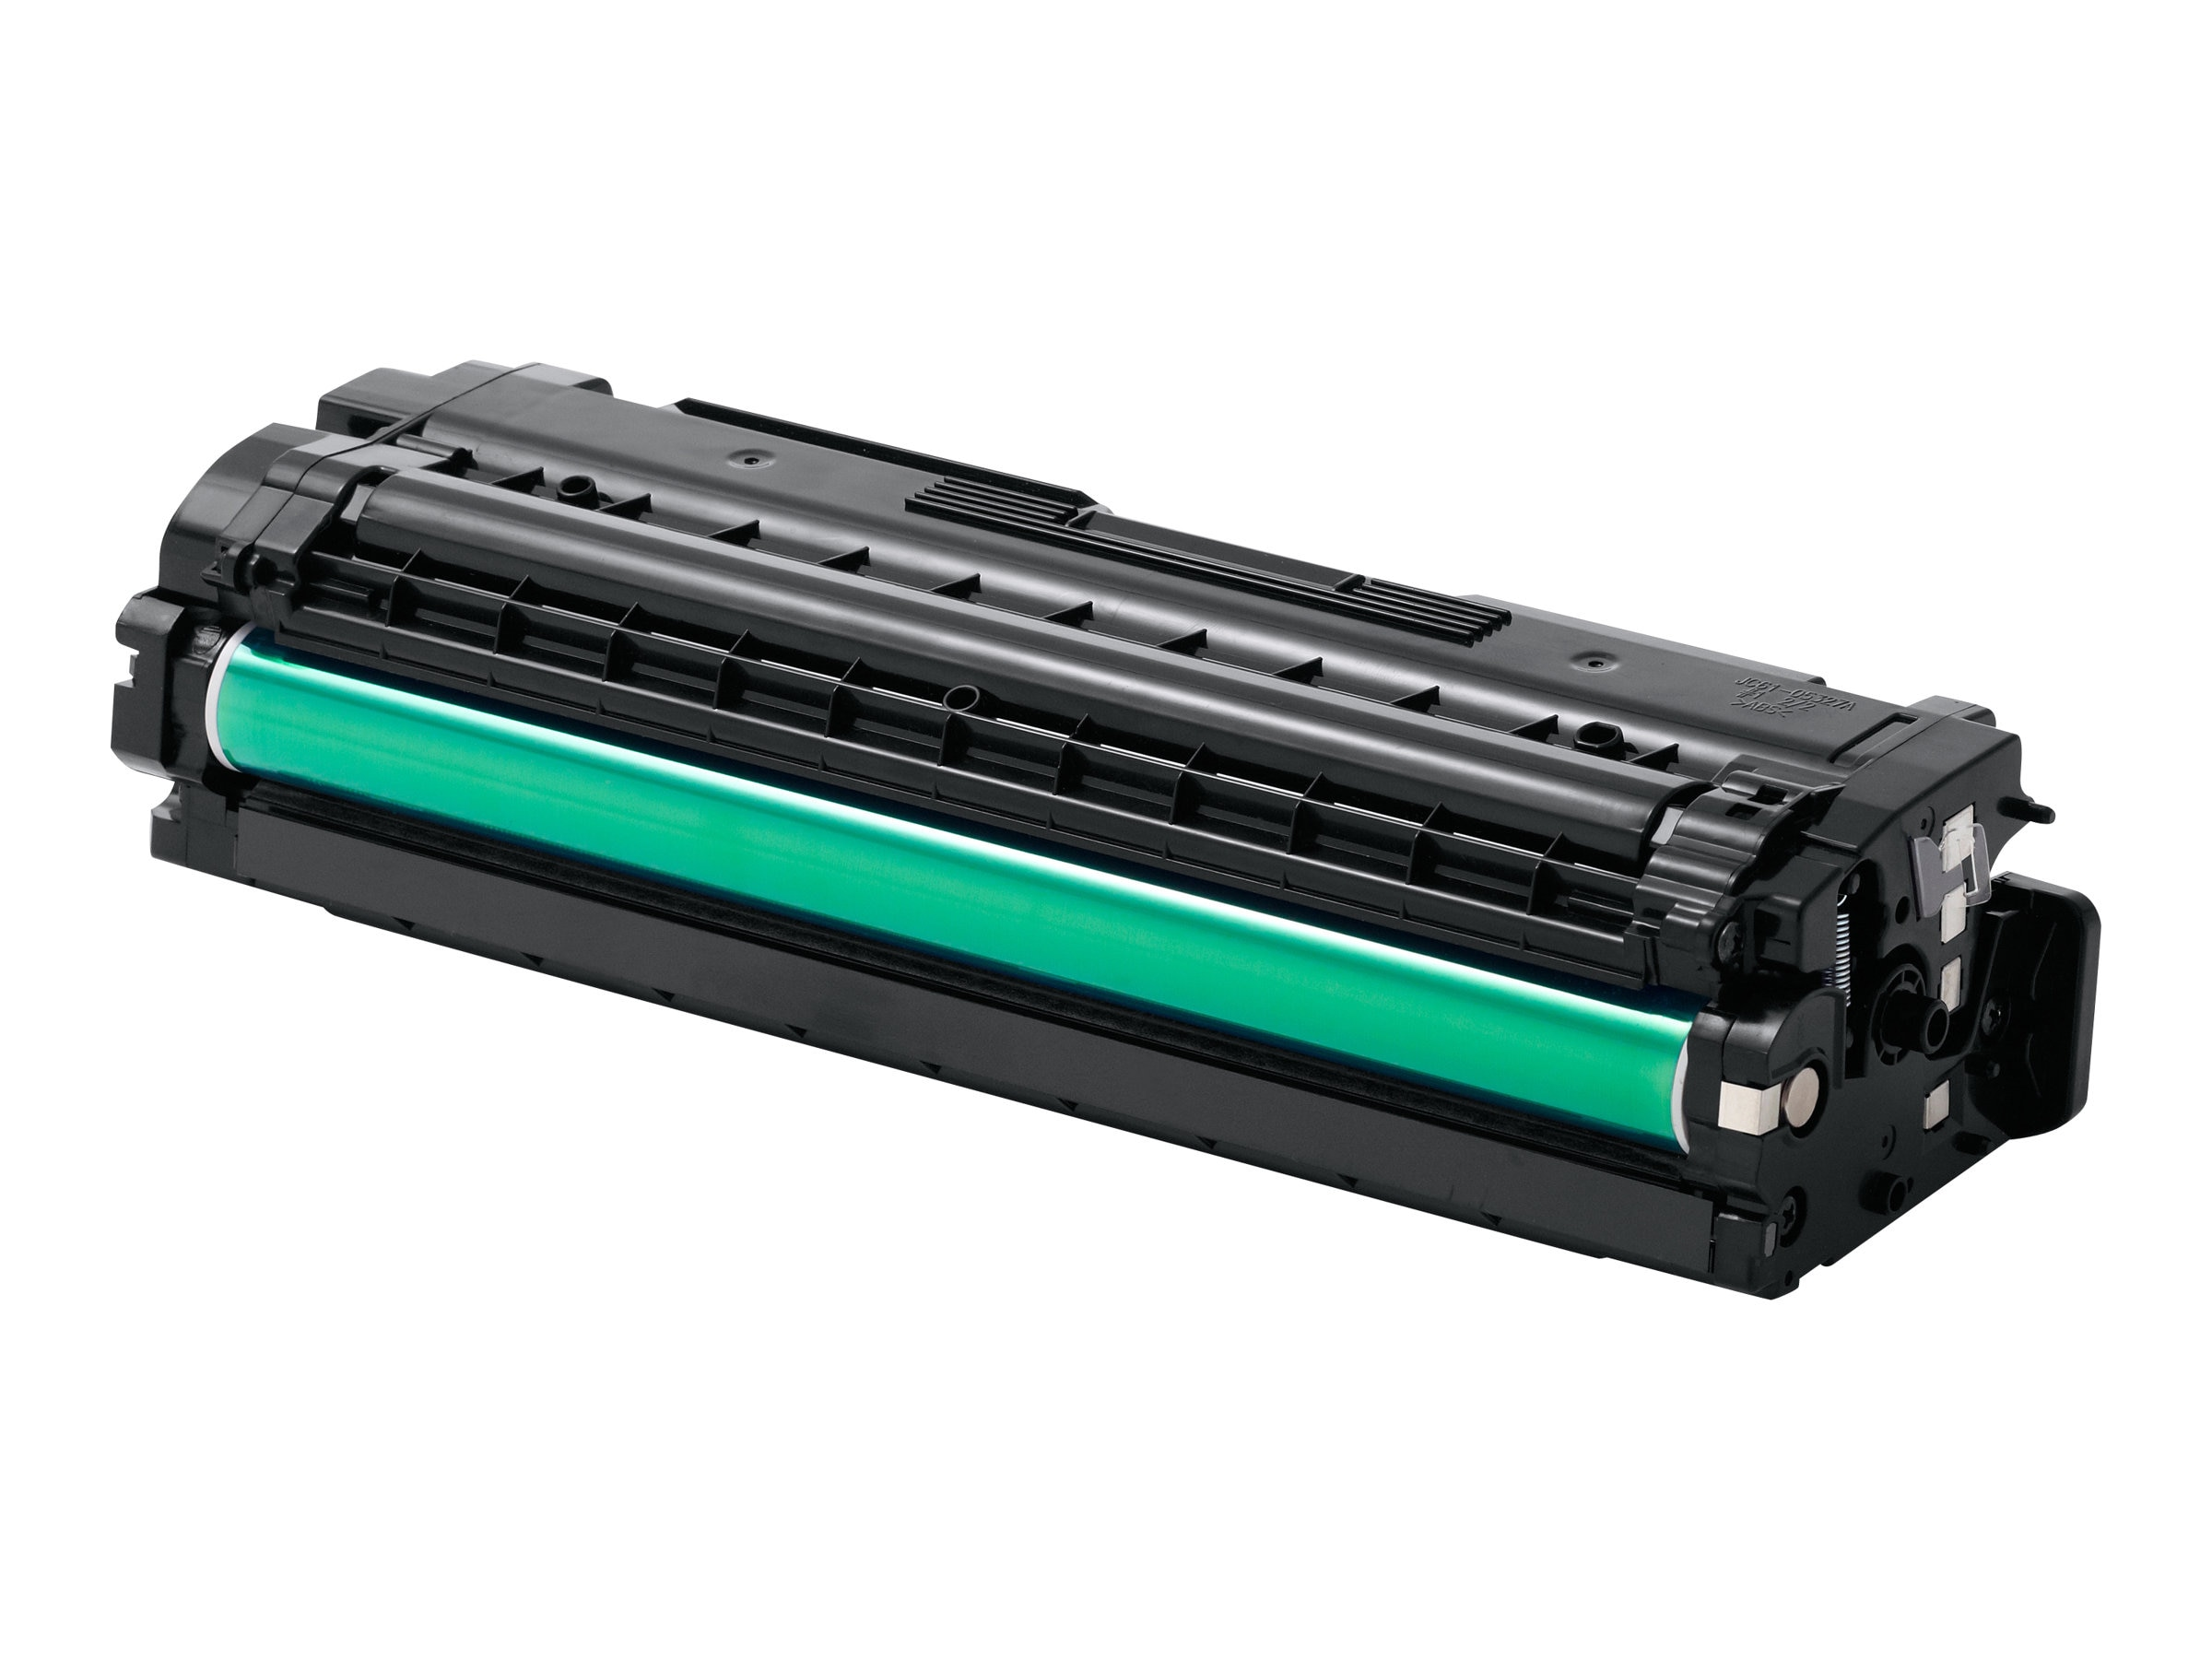 Samsung Cyan Toner Cartridge for CLP-680ND Color Laser Printer & CLX-6260FW & CLX-6260FD Color MFPs, CLT-C506S, 14483218, Toner and Imaging Components